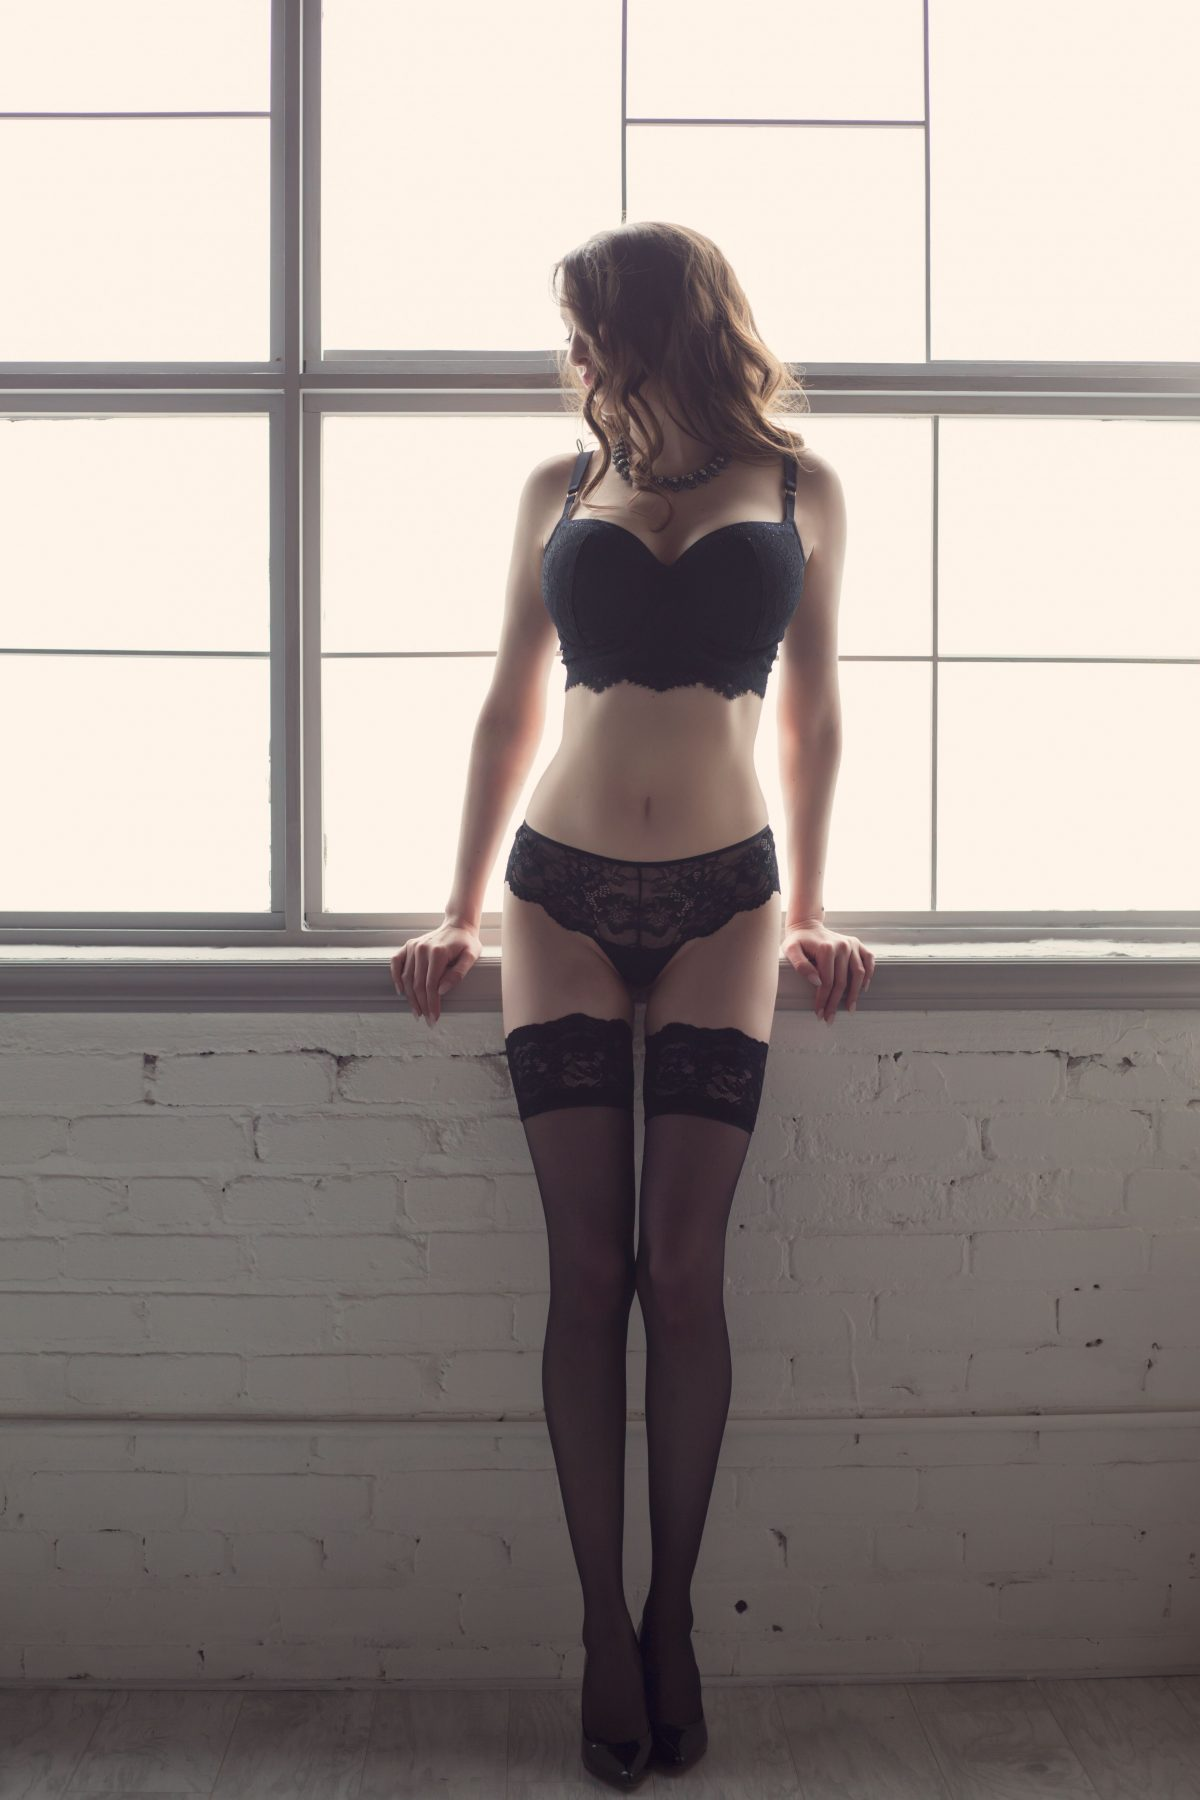 Toronto escorts companion upscale Amelie Interests Duo Disability-friendly Non-smoking Age Mature Figure Slender Curvy Breasts Enhanced Hair Brunette Ethnicity European Tattoos Small